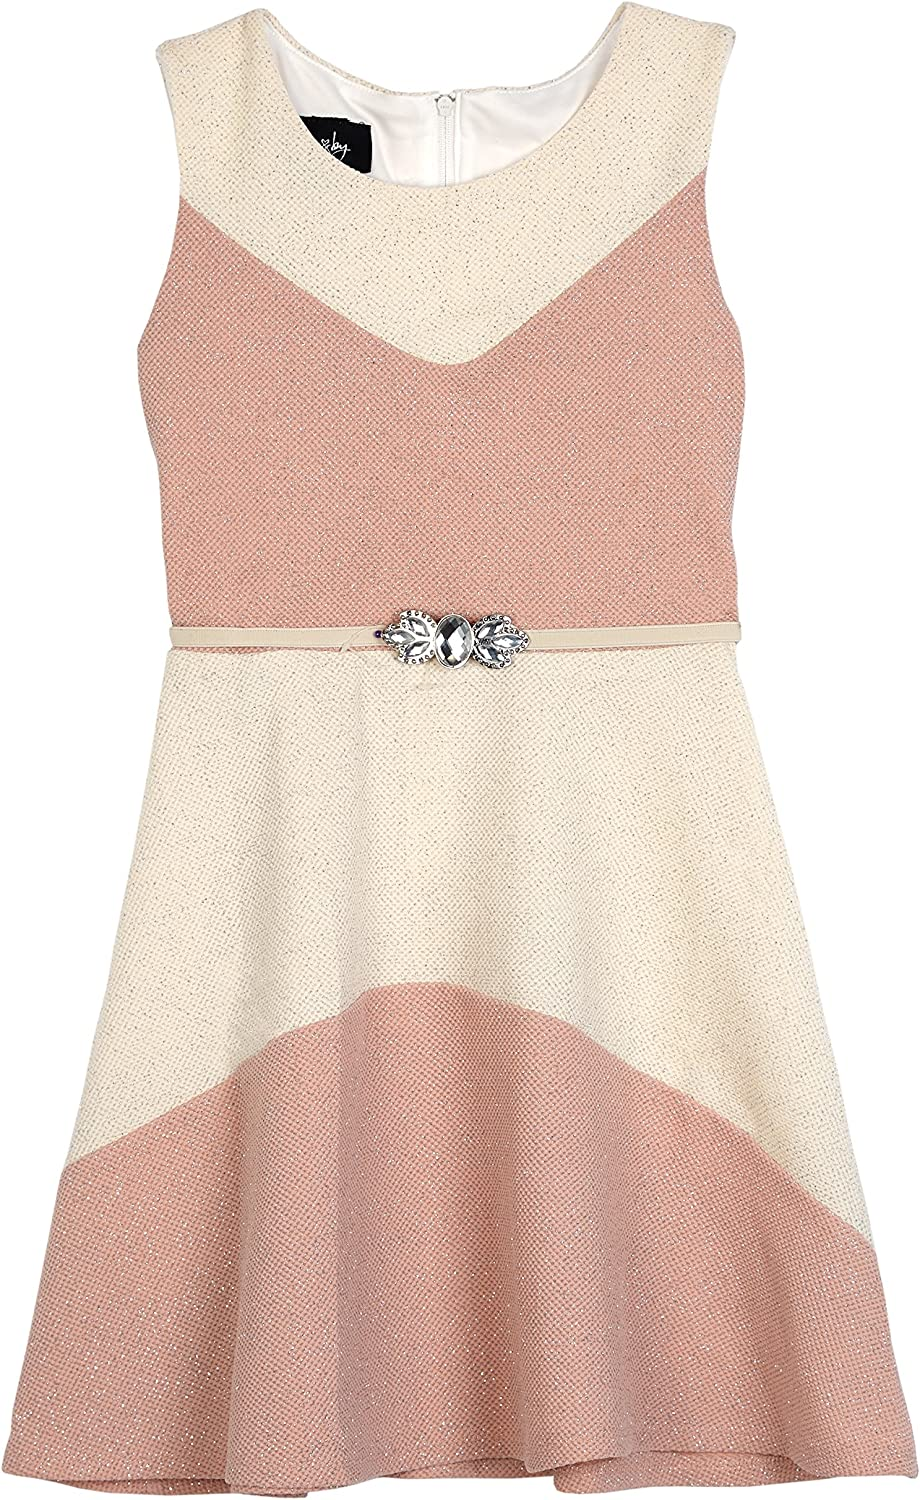 Amy Byer Girls' Big Sparkle Fit and Flare Colorblock Dress